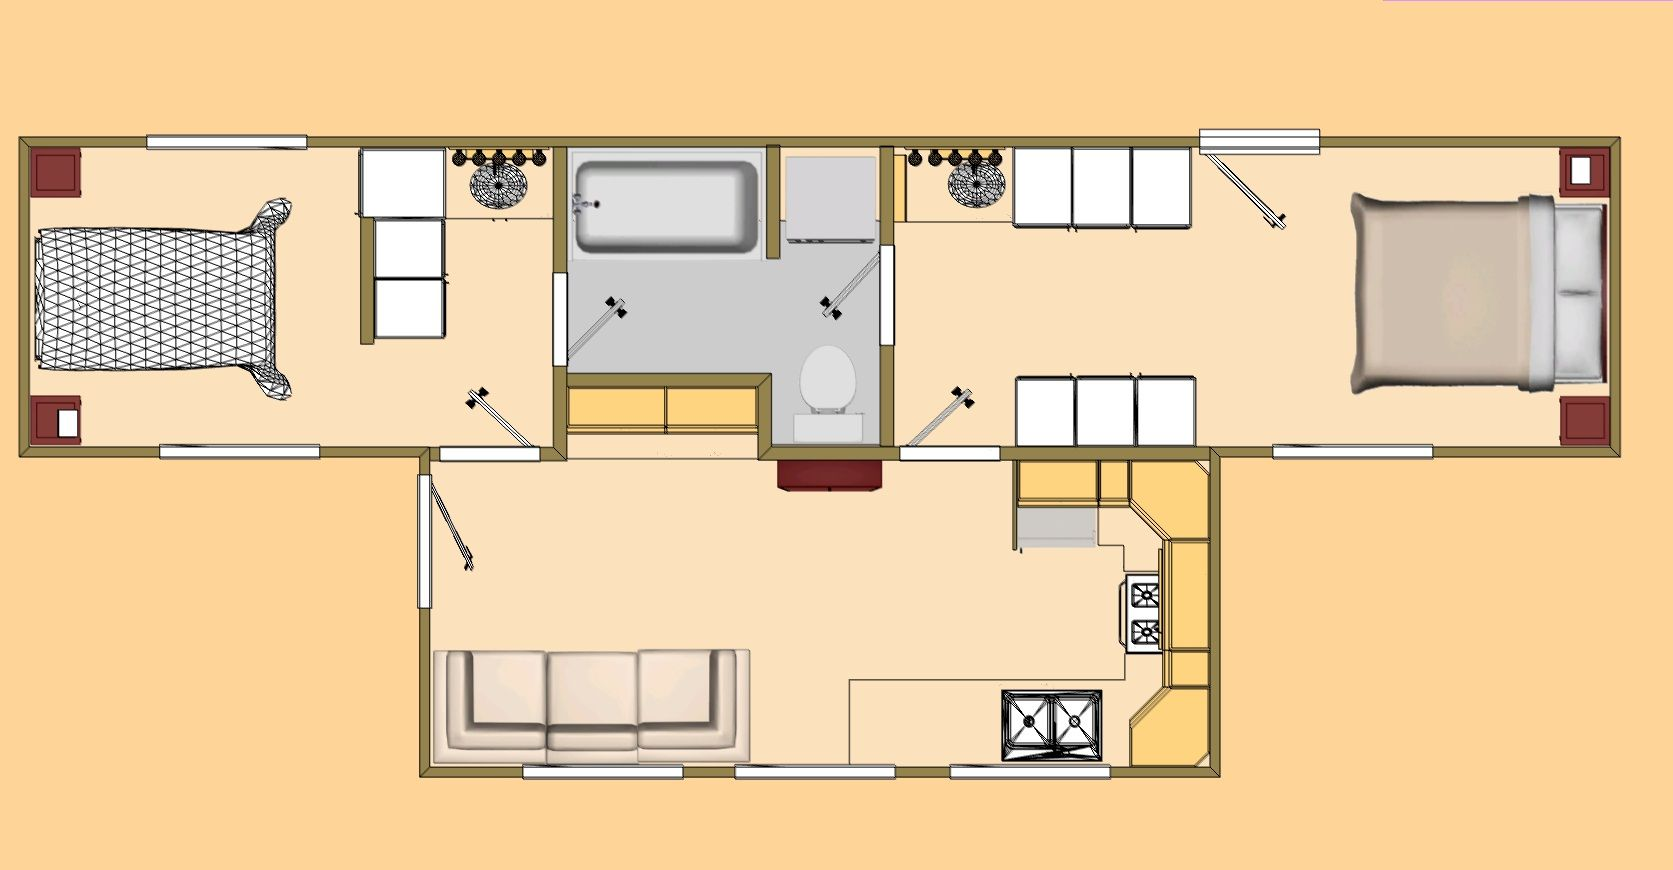 Container home floor plans com 480 sq ft shipping container floor plan big t floor plan - Cargo container home designs ...